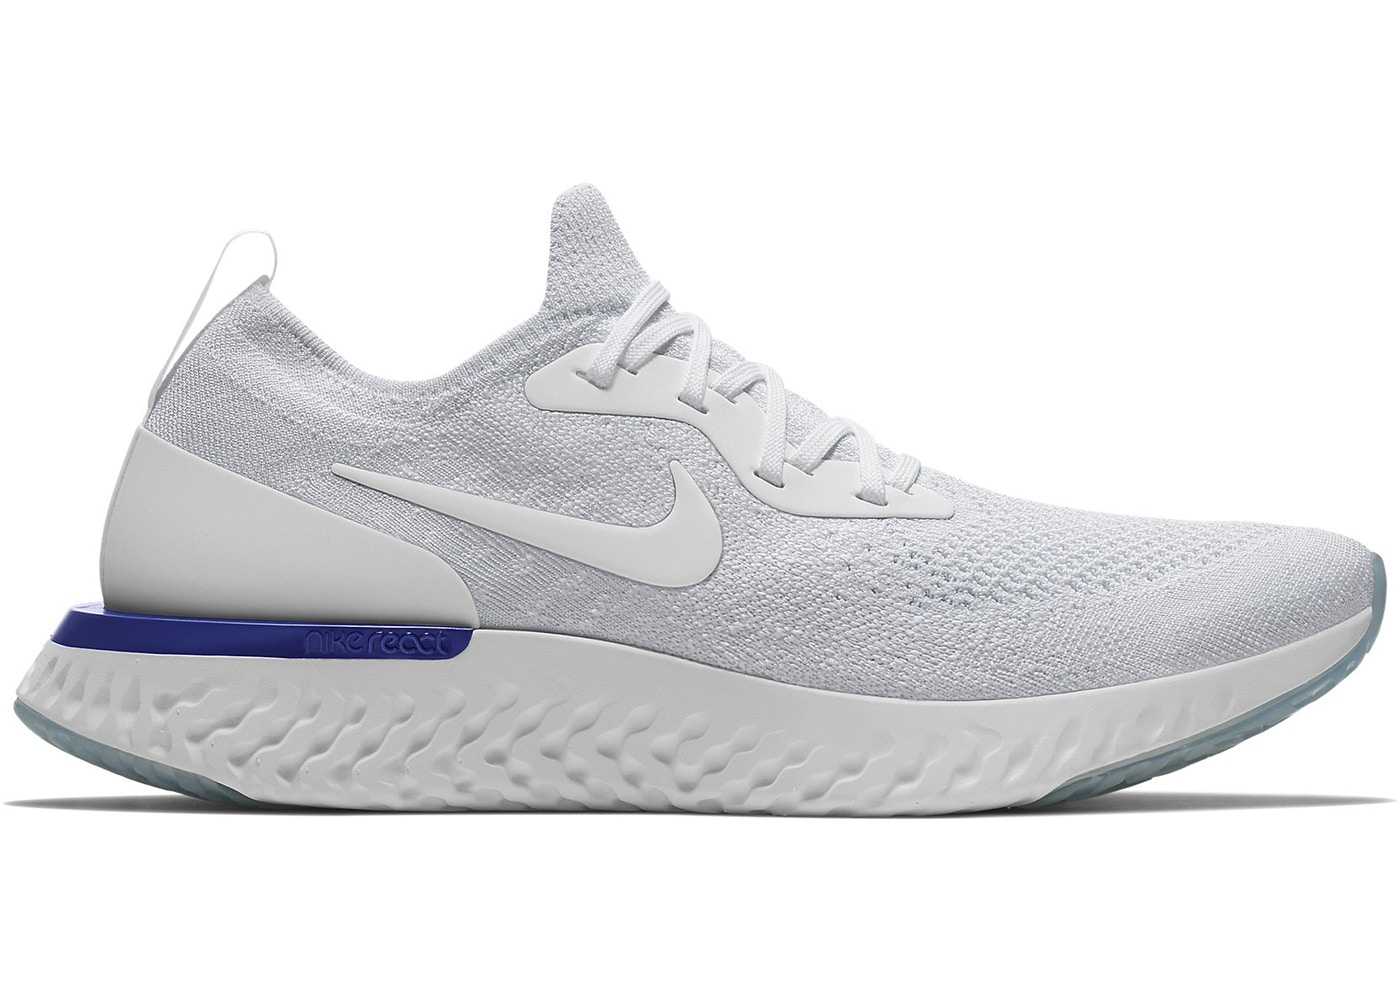 Nike Epic React Flyknit Sneakers - White Buy Cheap Official 8LWG52